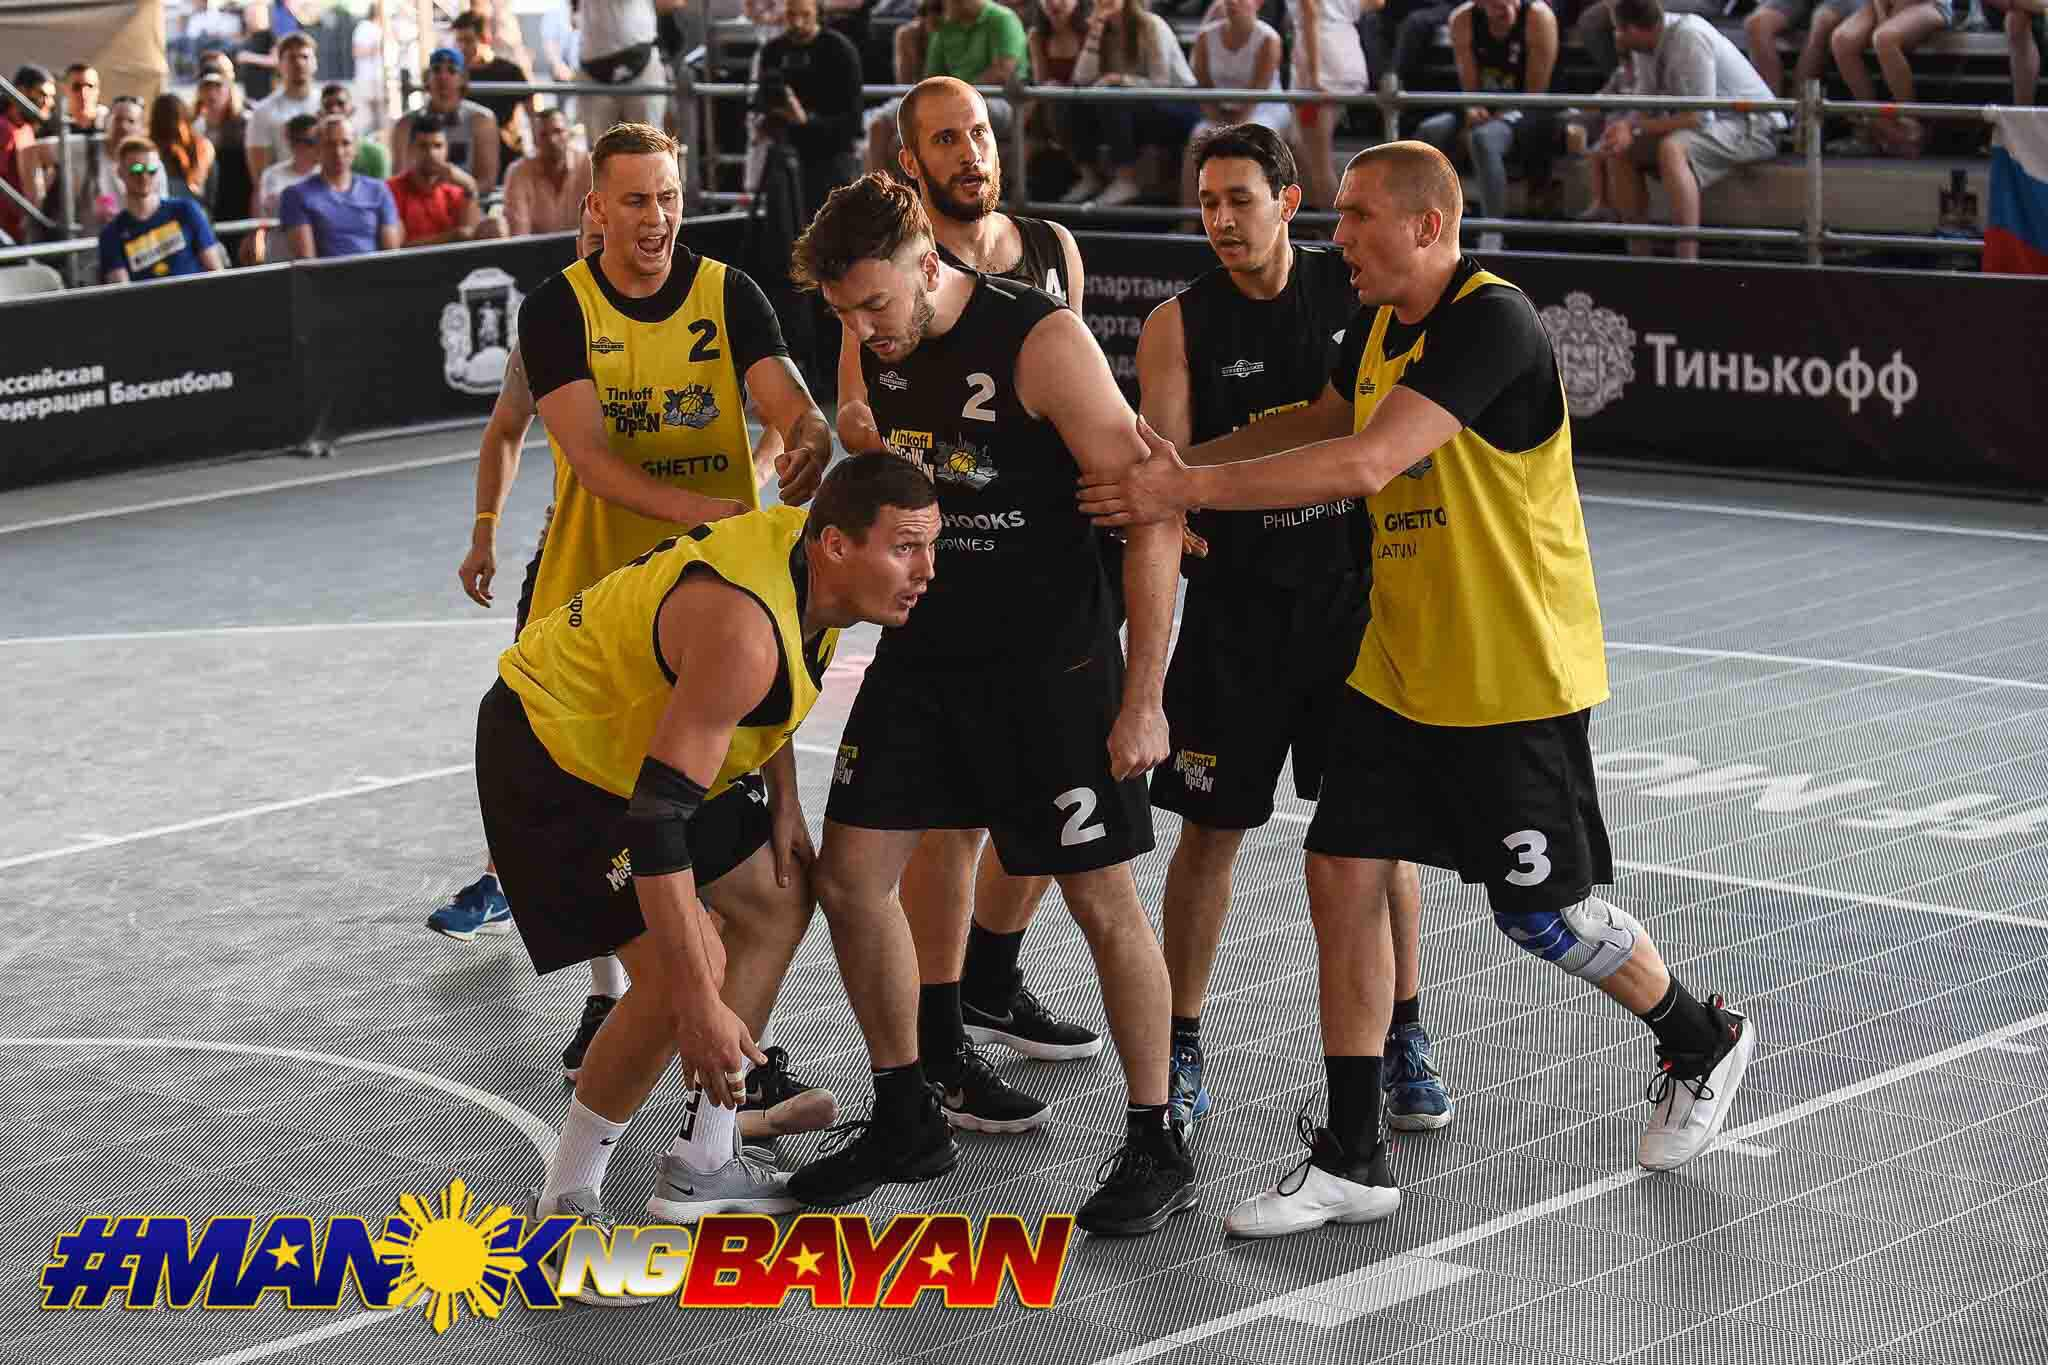 Tiebreaker Times Pasig Chooks-to-Go fall out of Moscow Challenger after heated game against Riga 3x3 Basketball Chooks-to-Go Pilipinas 3x3 News  Taylor Statham Riga Ghetto Pasig Kings Nikola Pavlovic Joshua Munzon Dylan Ababou 2019 FIBA Moscow Tinkoff Challenger 2019 Chooks-to-Go Pilipinas 3x3 Season